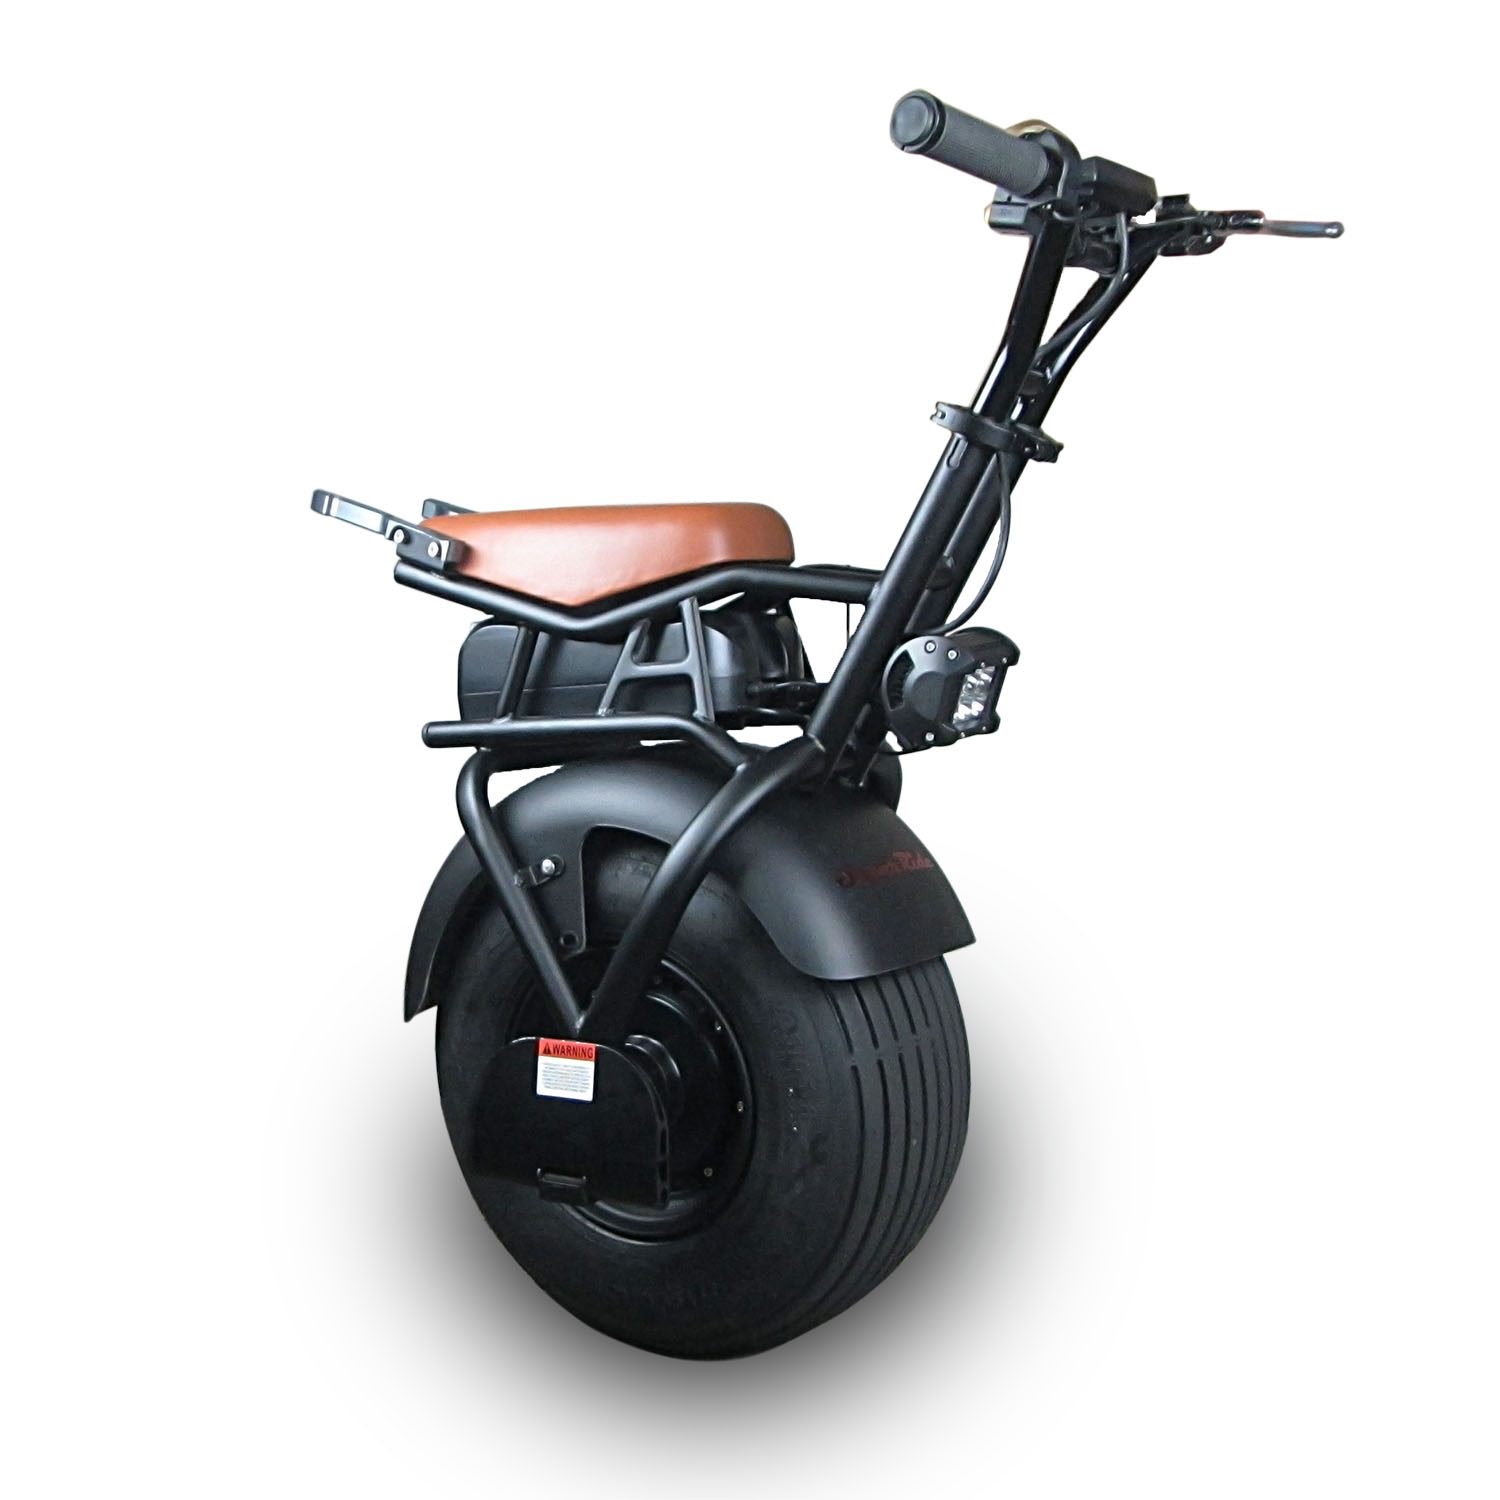 Superride Electric Unicycle S1000 Self Balancing One Wheel Scooter With Single Fat Tire 1000w Motor